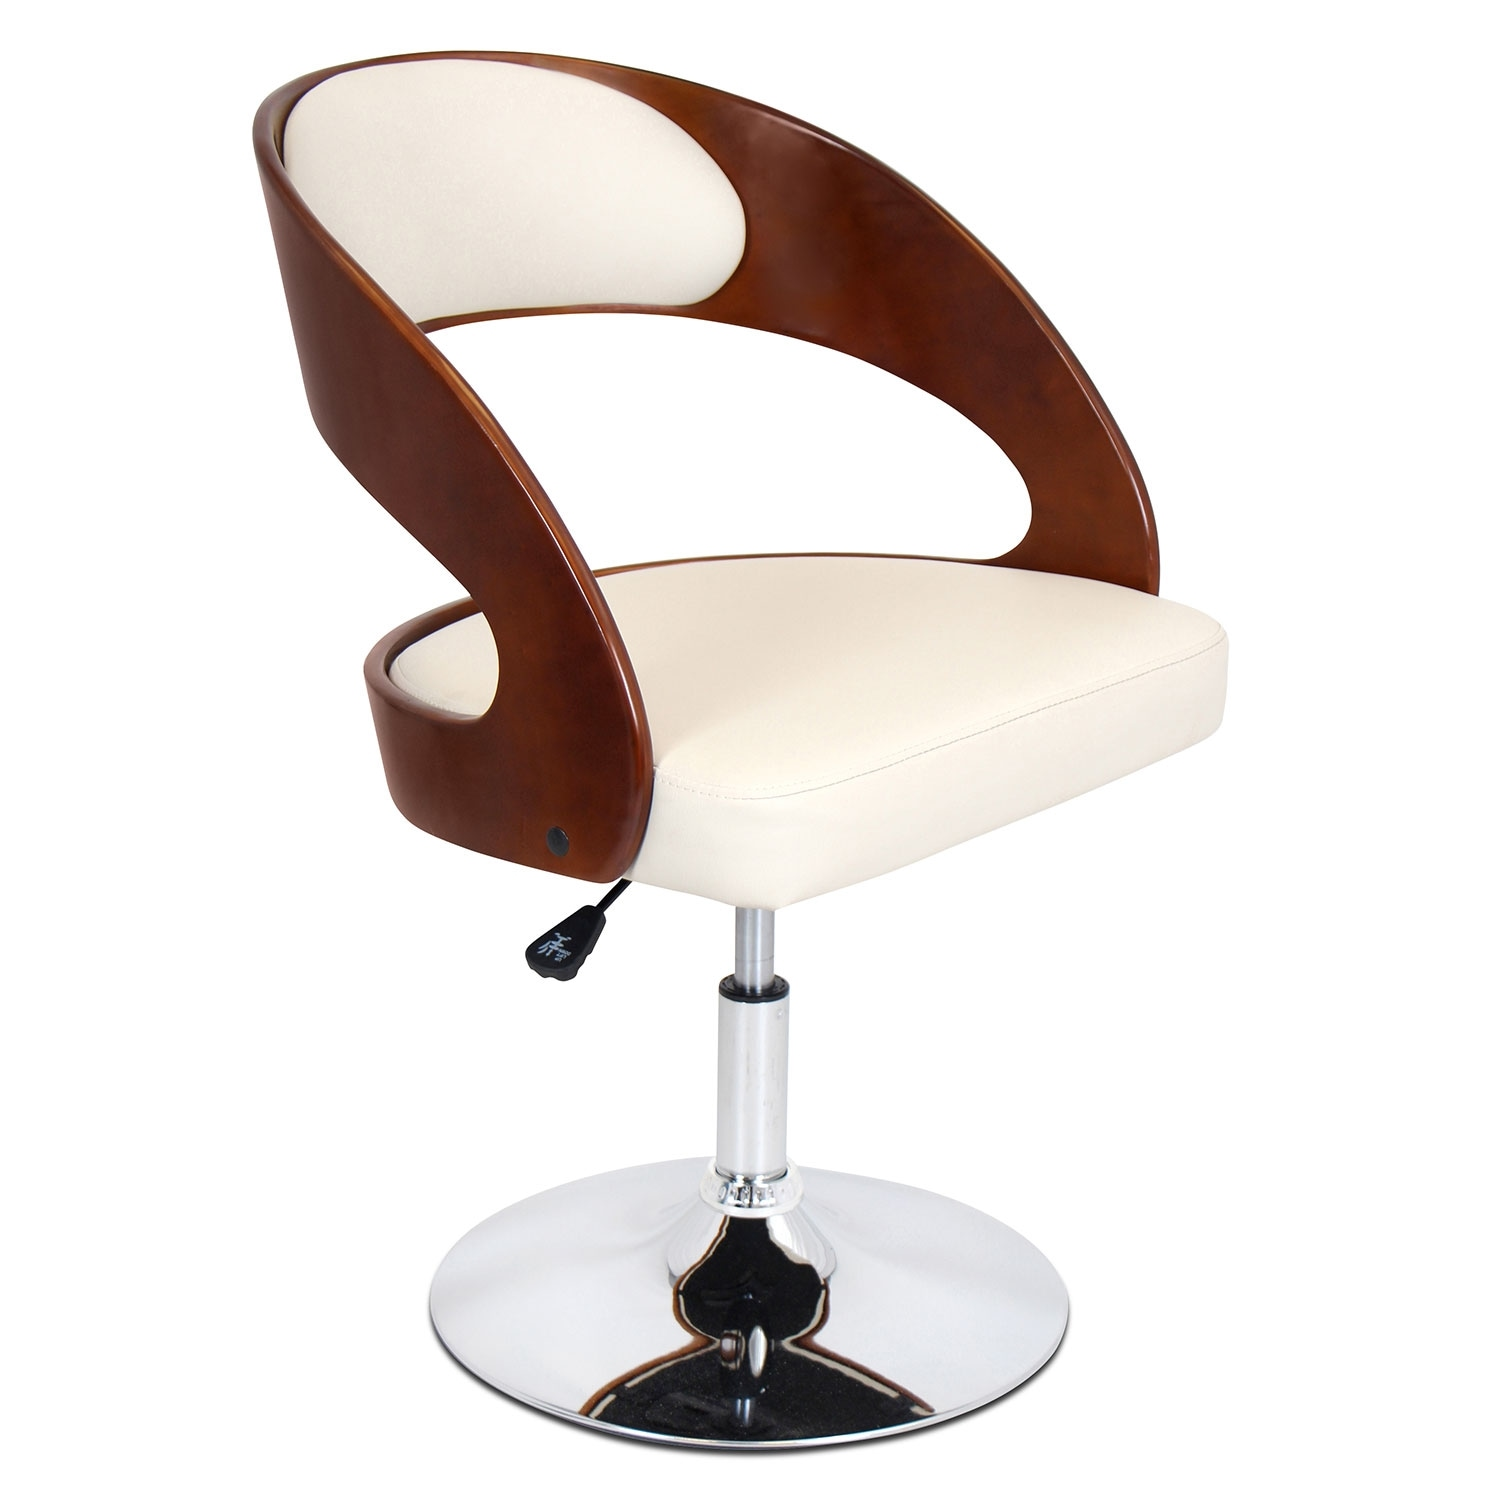 Living Room Furniture - Oxford Accent Chair - White